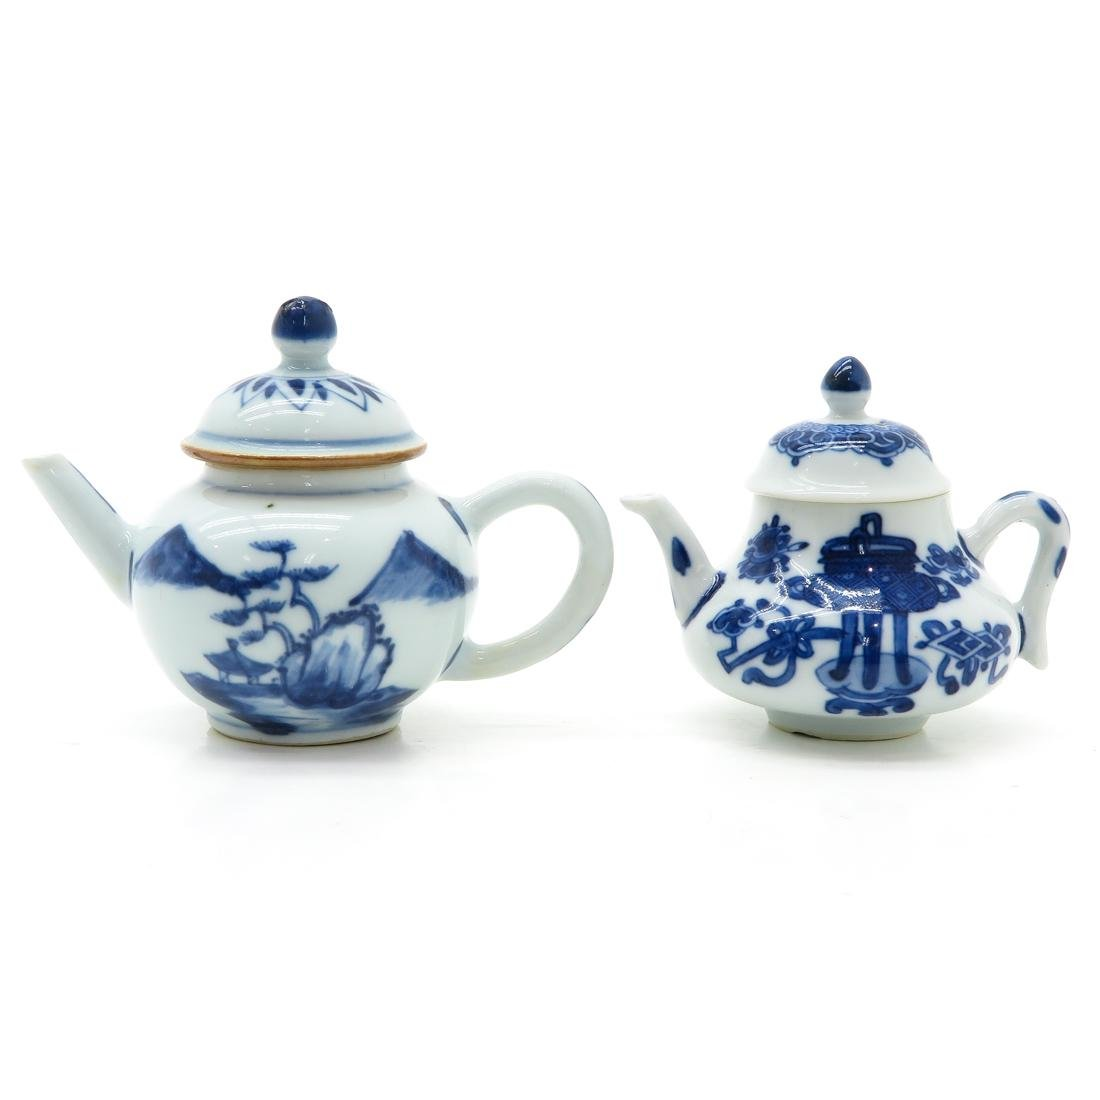 Lot of 2 Small Teapots